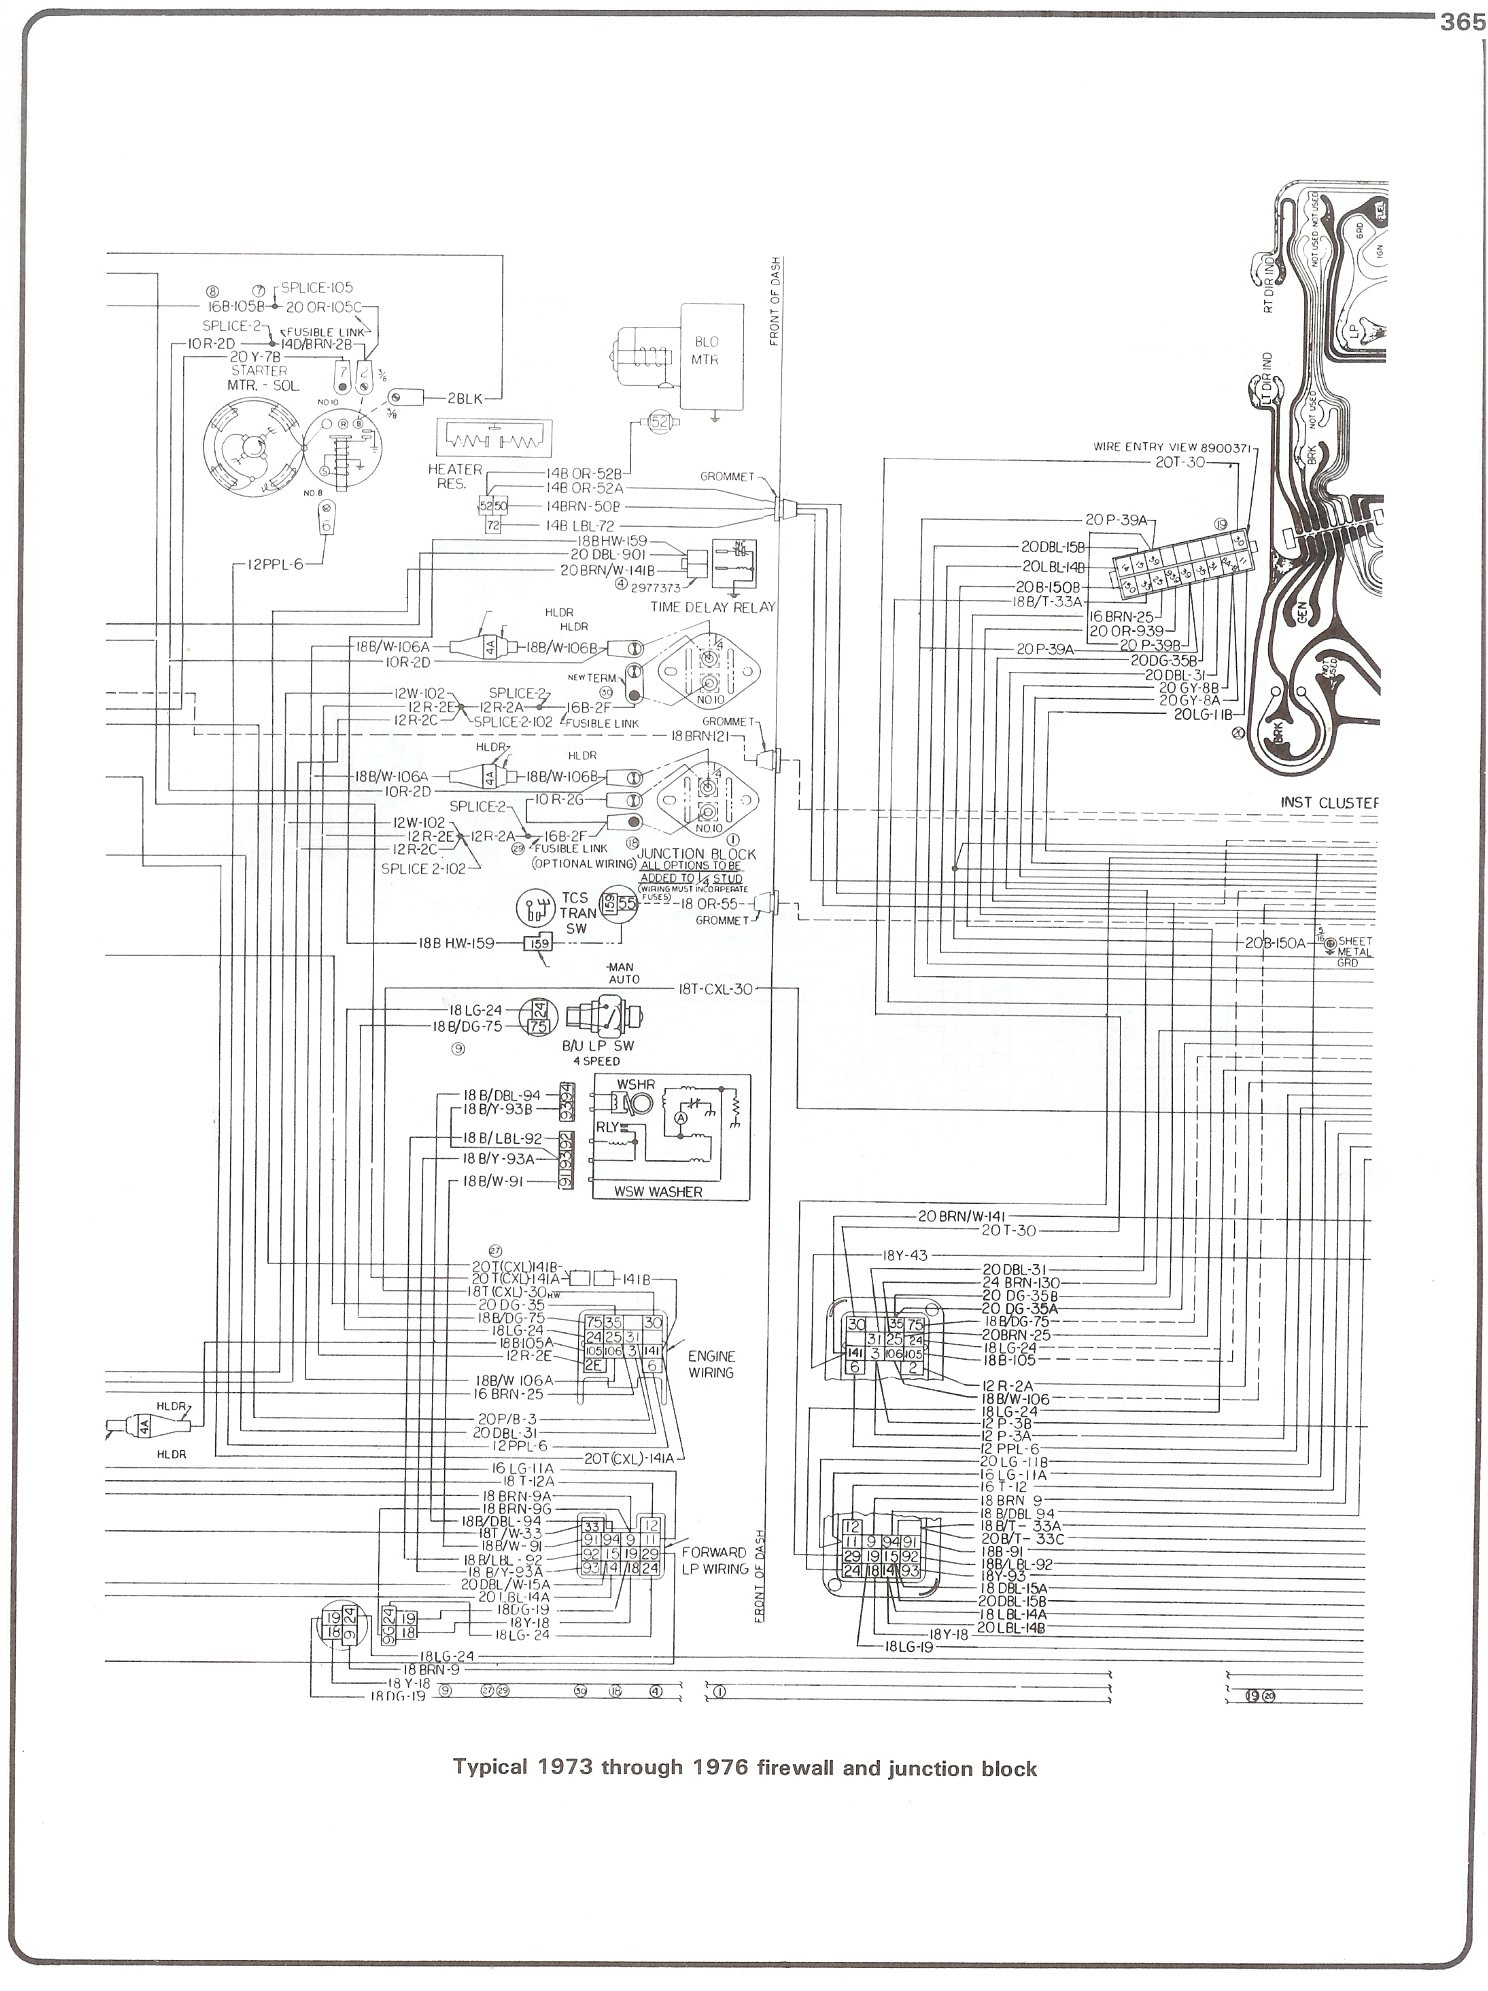 73 76_firewall_junct complete 73 87 wiring diagrams 1982 chevy truck engine wiring diagram at alyssarenee.co